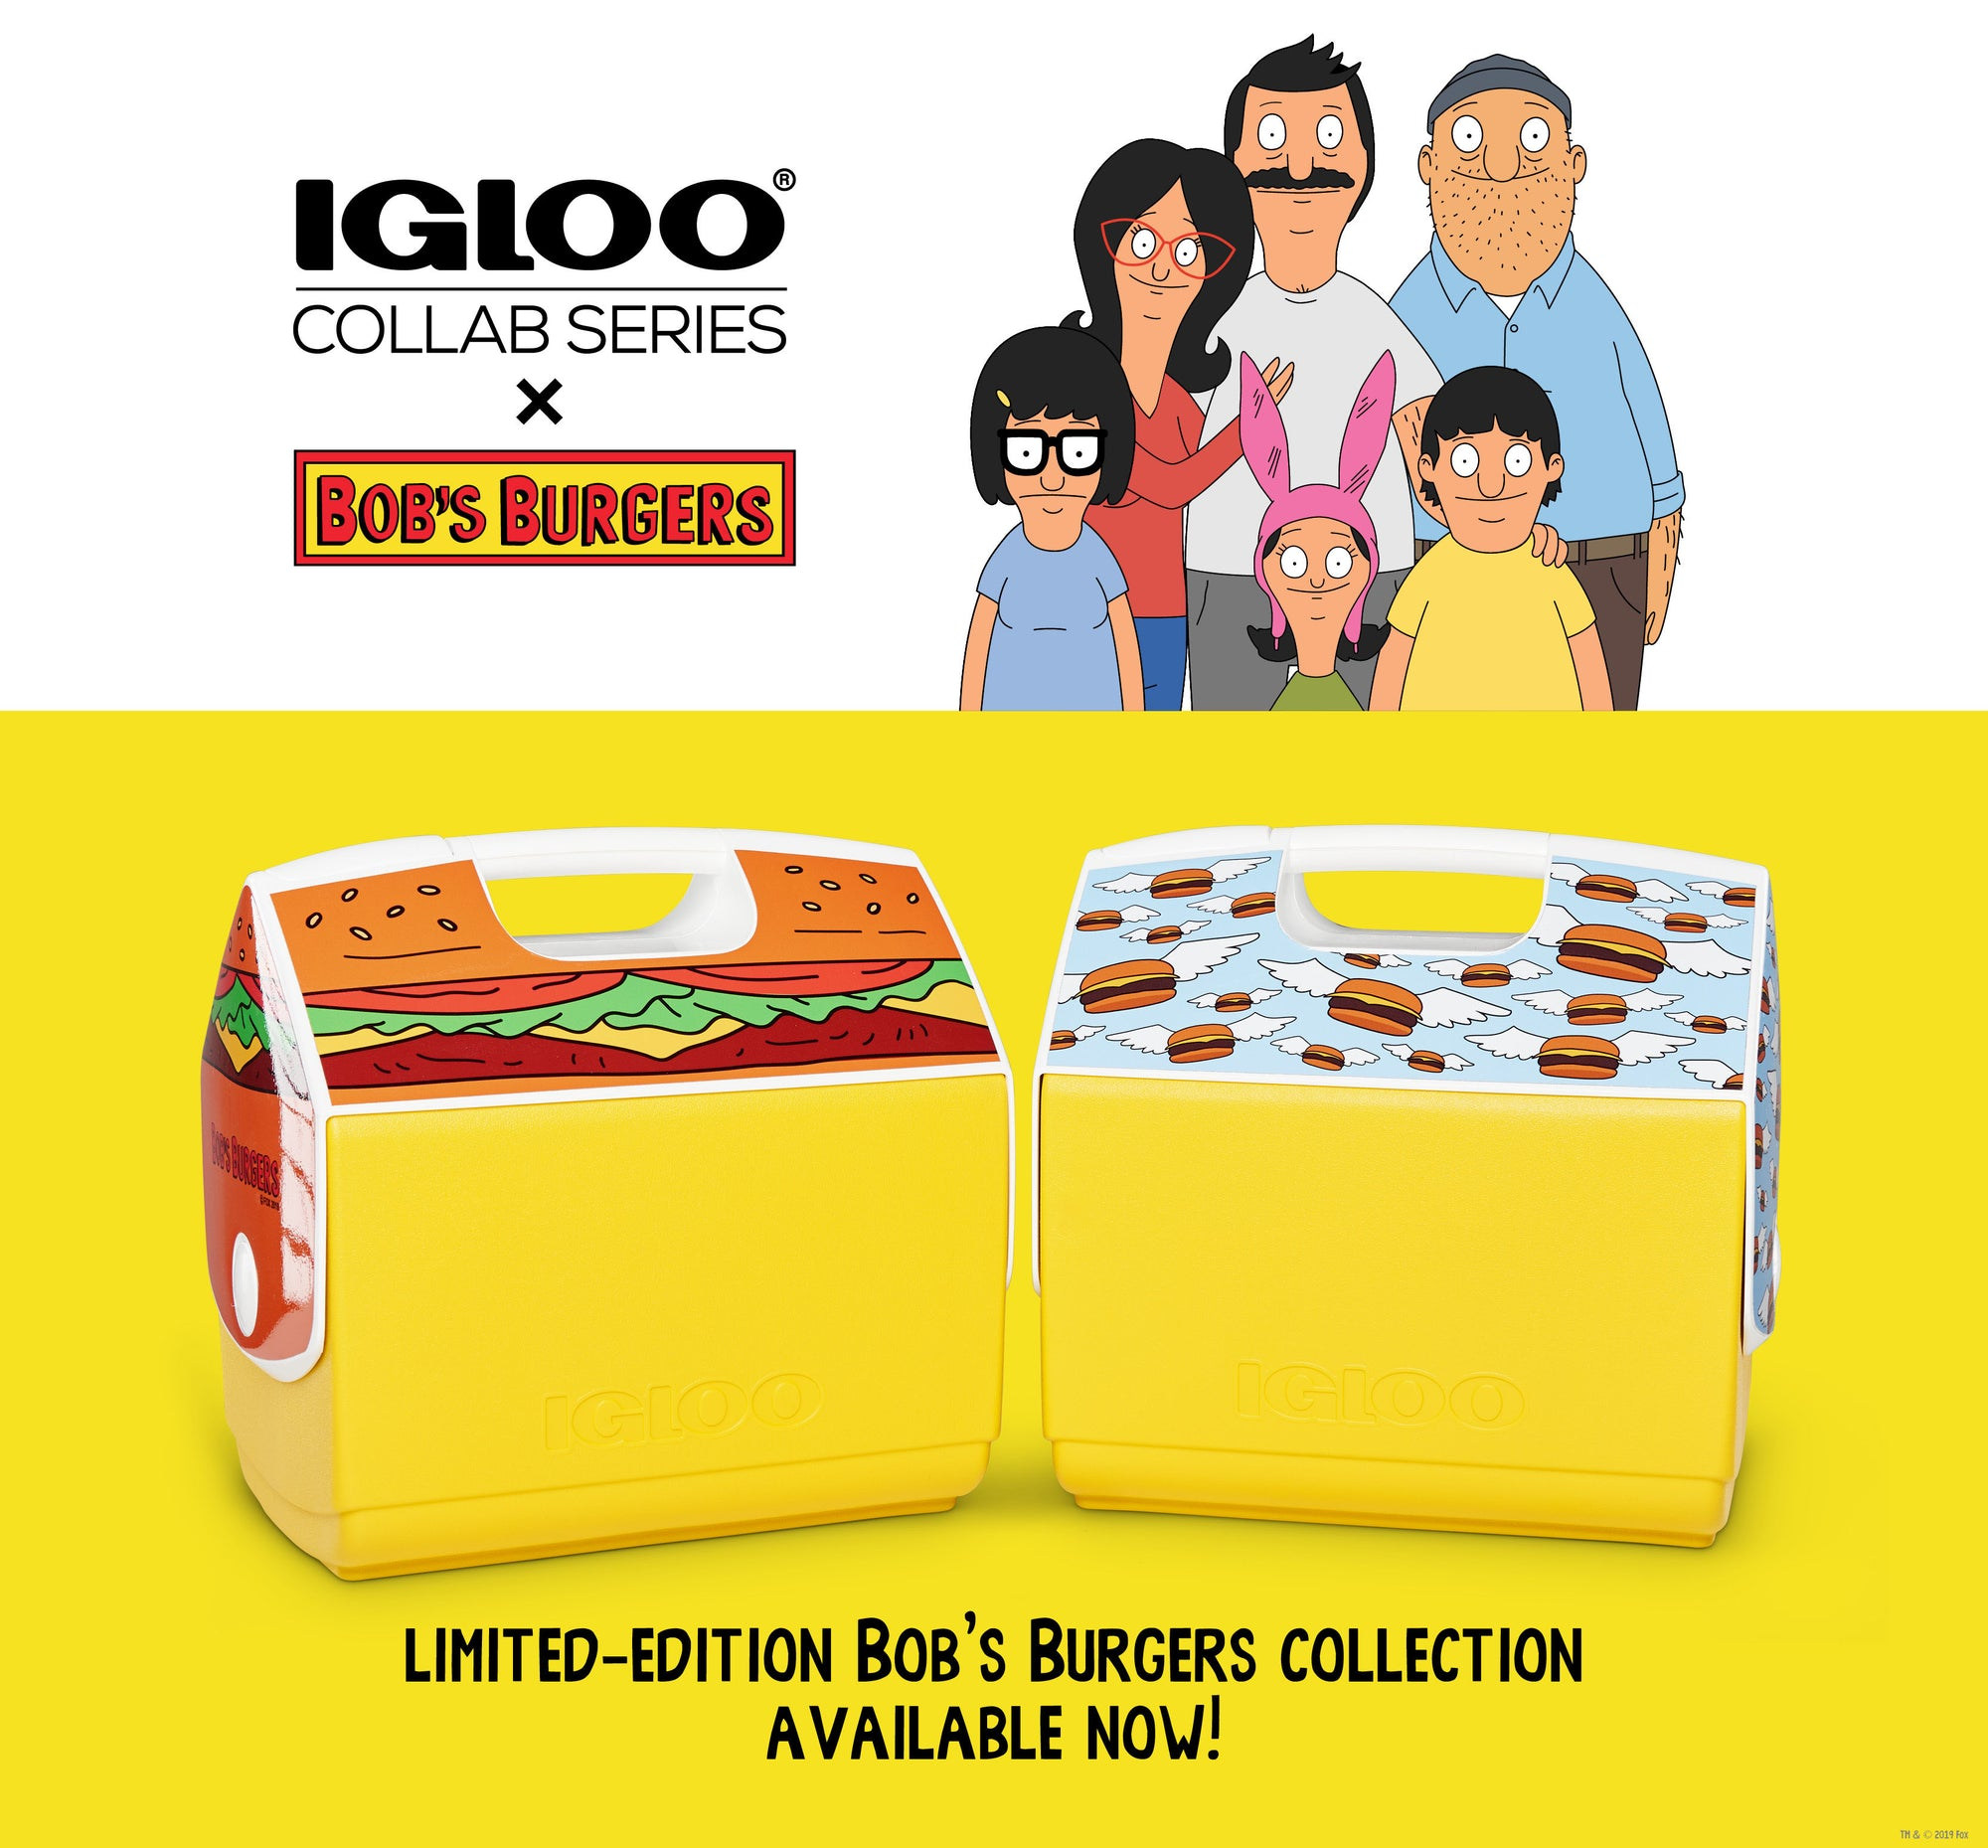 Limited-Edition Bob'sBurgers Collection